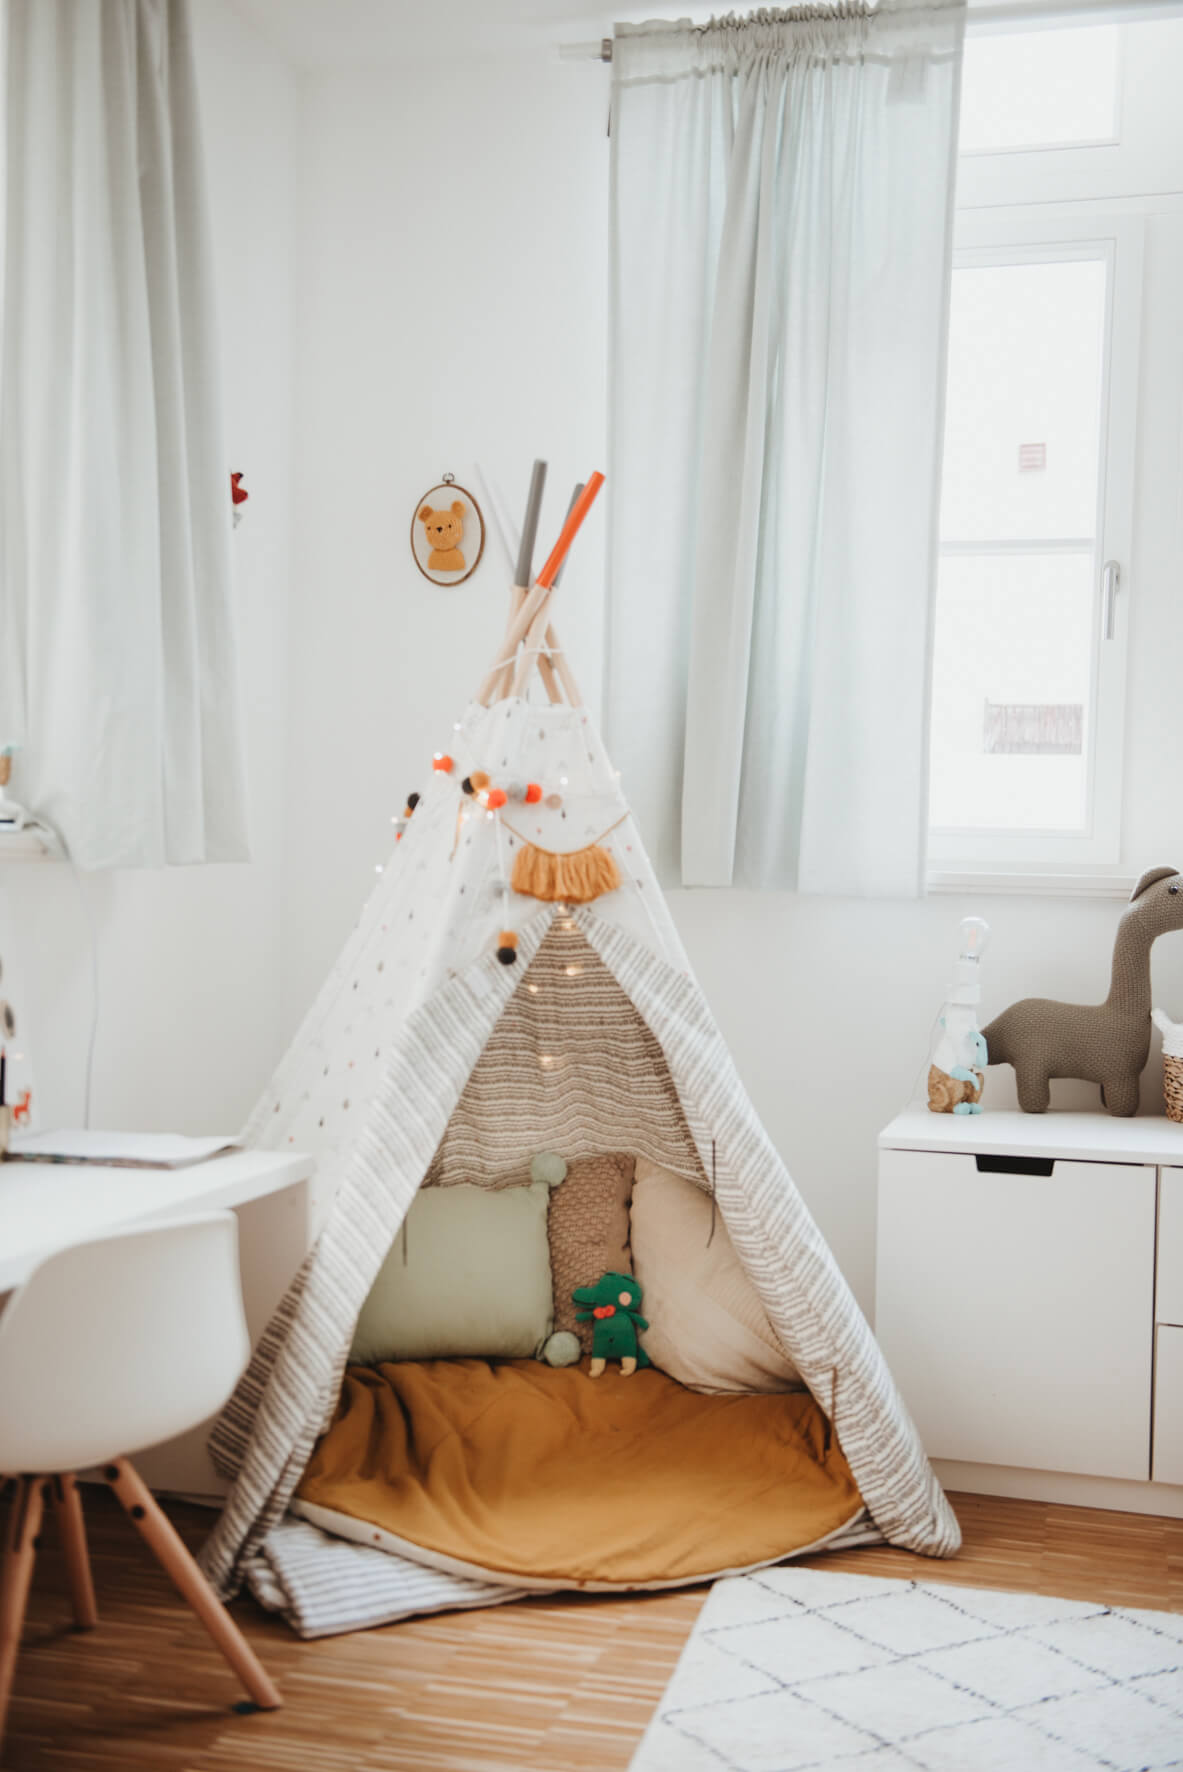 Scnadinavian kid's playroom ideas with white teepee and safari themed interior